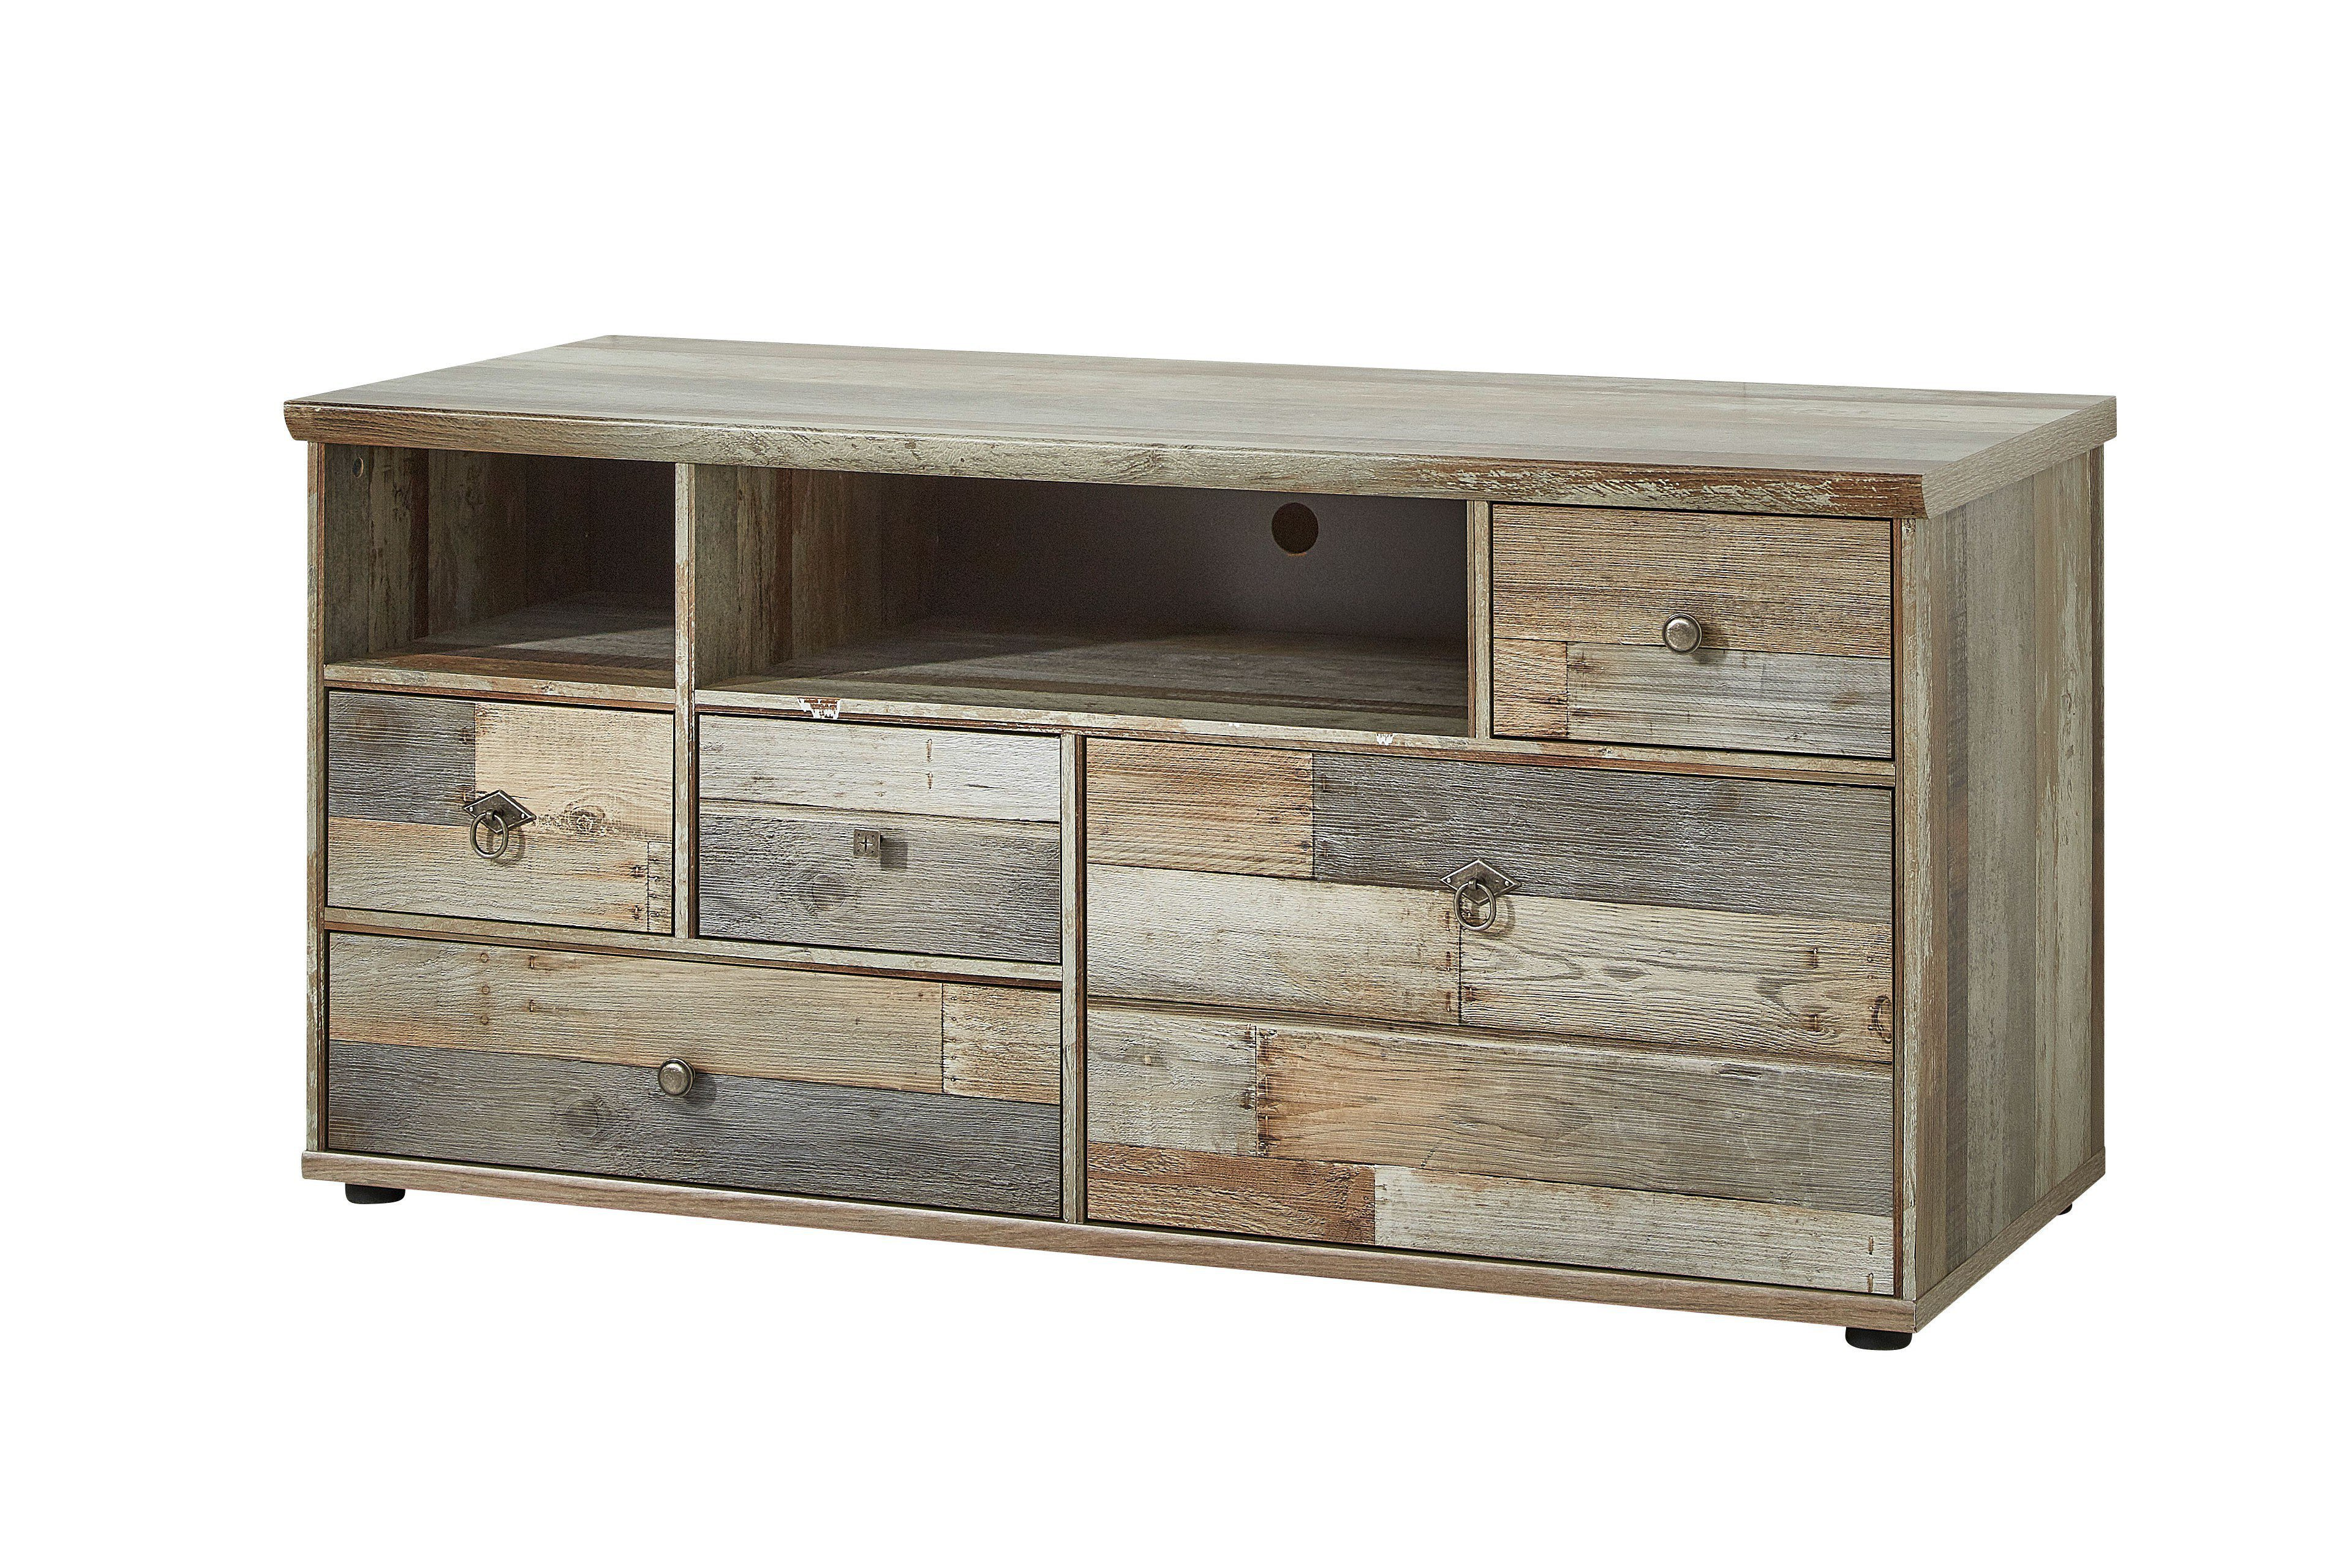 innostyle lowboard bonanza driftwood grau m bel letz. Black Bedroom Furniture Sets. Home Design Ideas